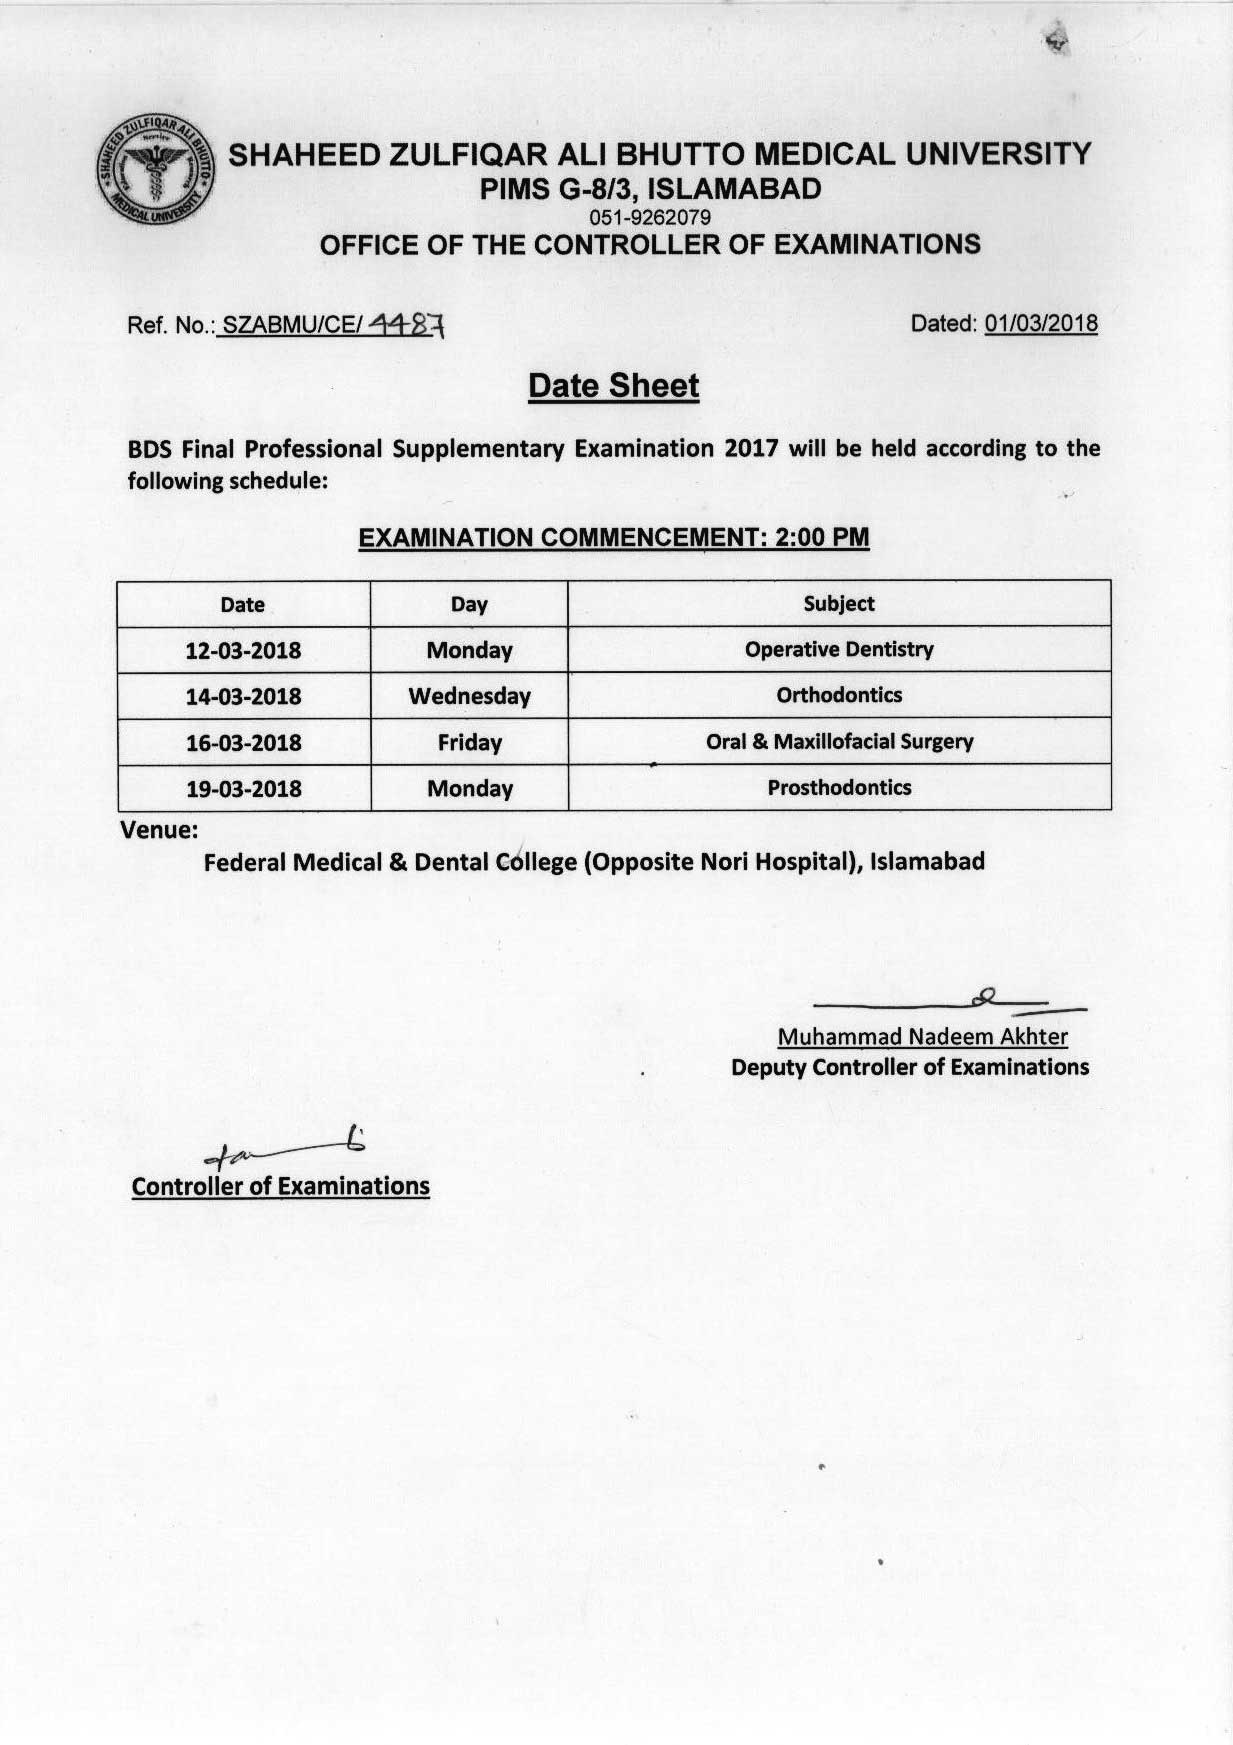 Date sheet - BDS All Professional Supplementary Exams 2017